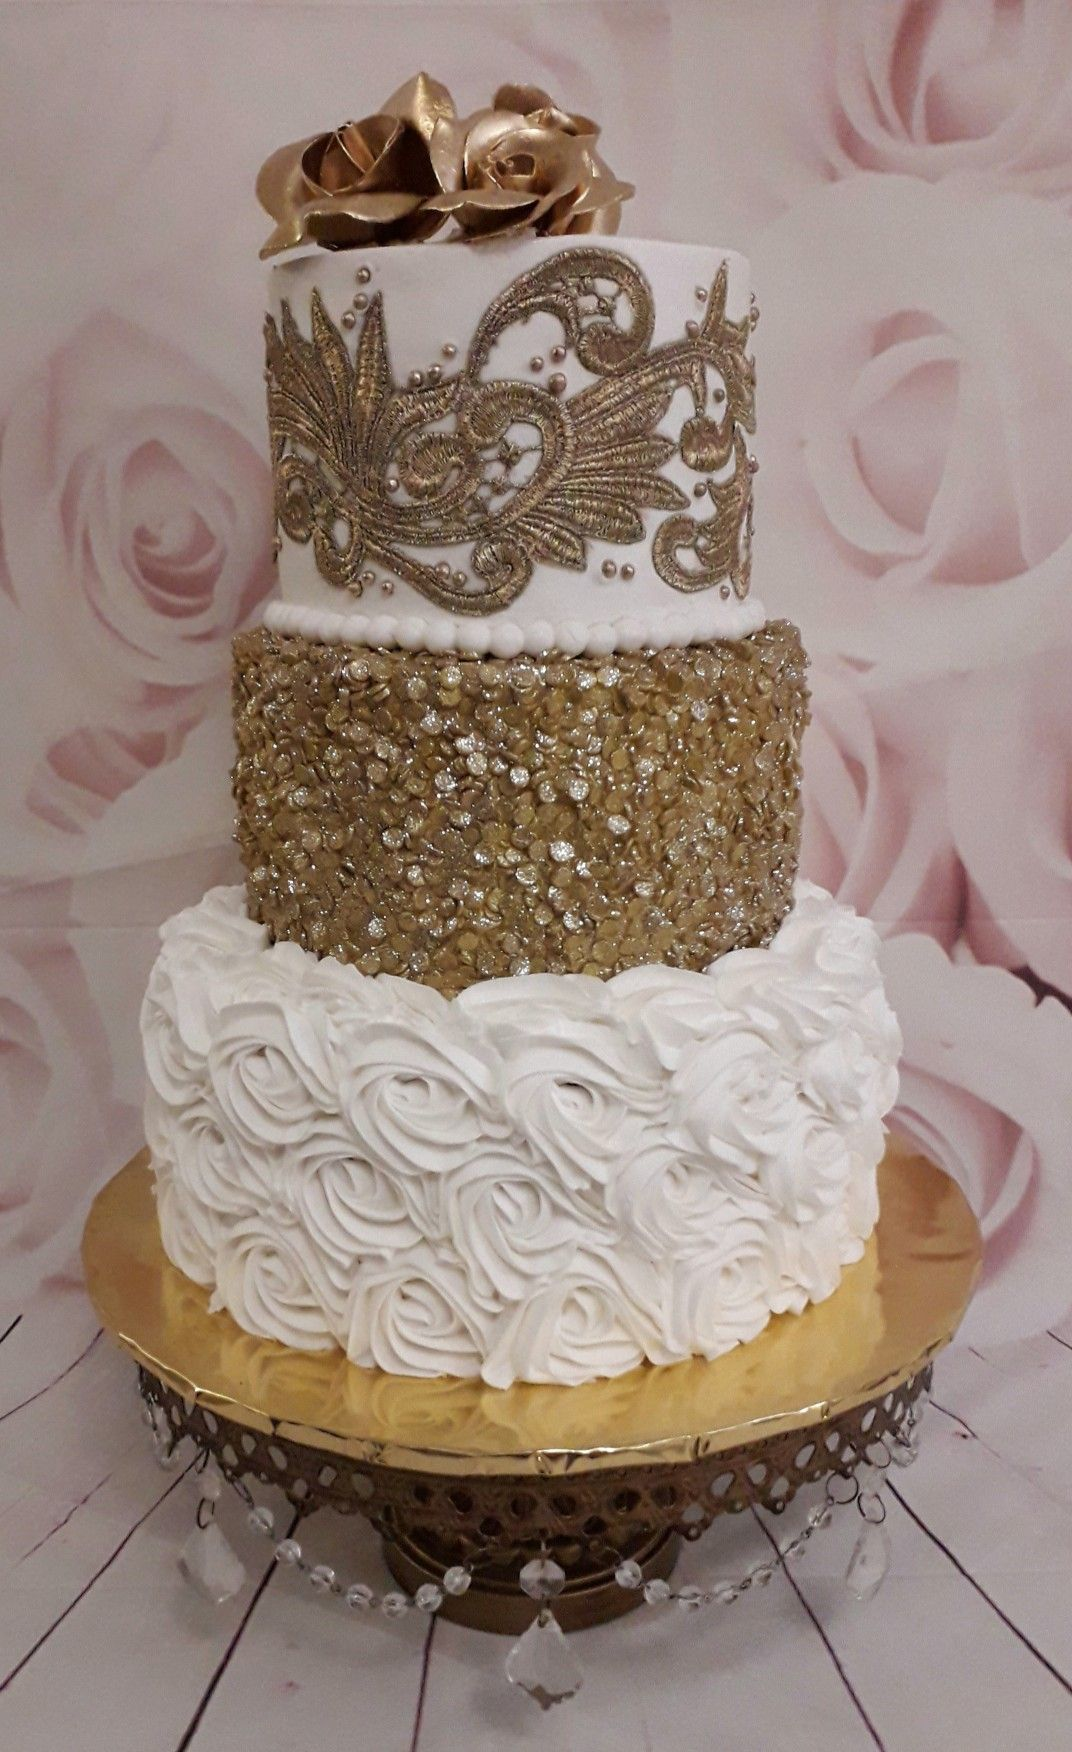 49+ 50th anniversary cake with photo ideas in 2021